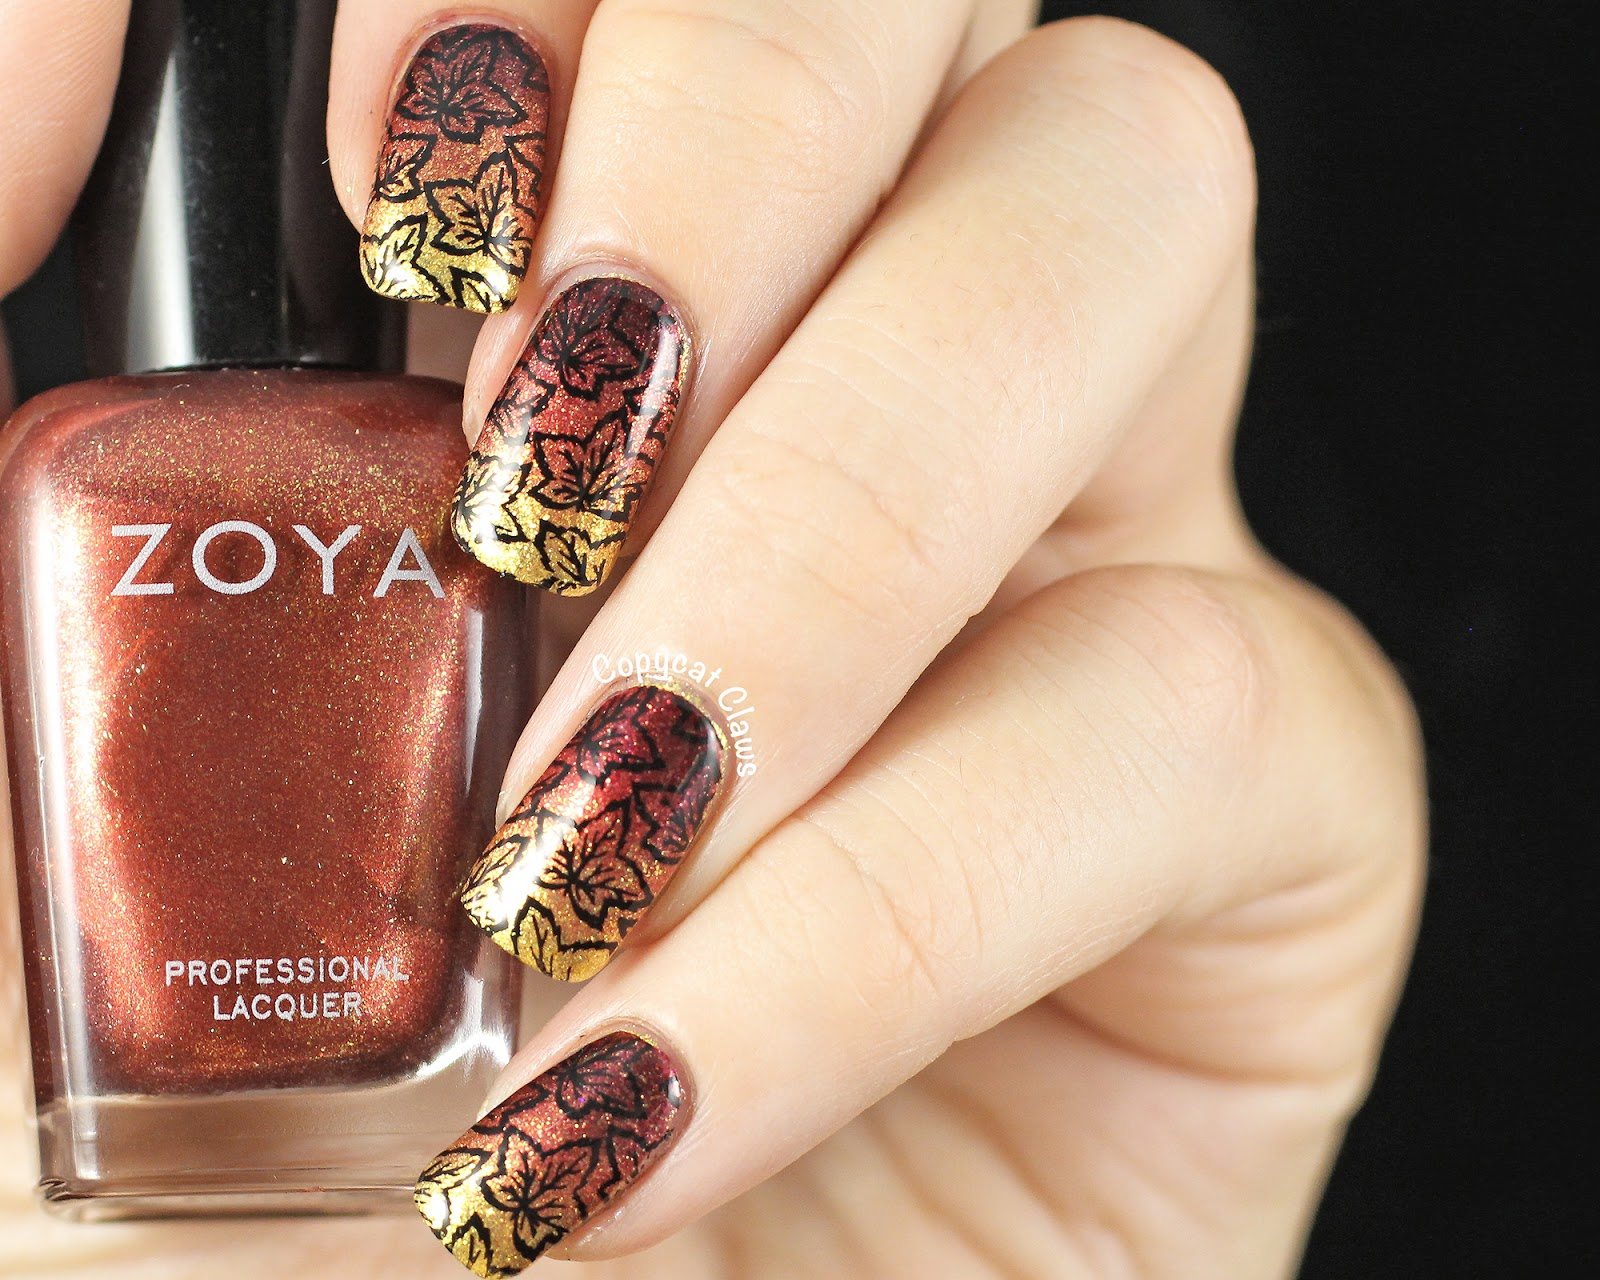 For Inspired By A Color I Took Inspiration From Nail Polish Name Zoya Autumn So Did Fall Toned Gradient And Stamped On Some Leaves